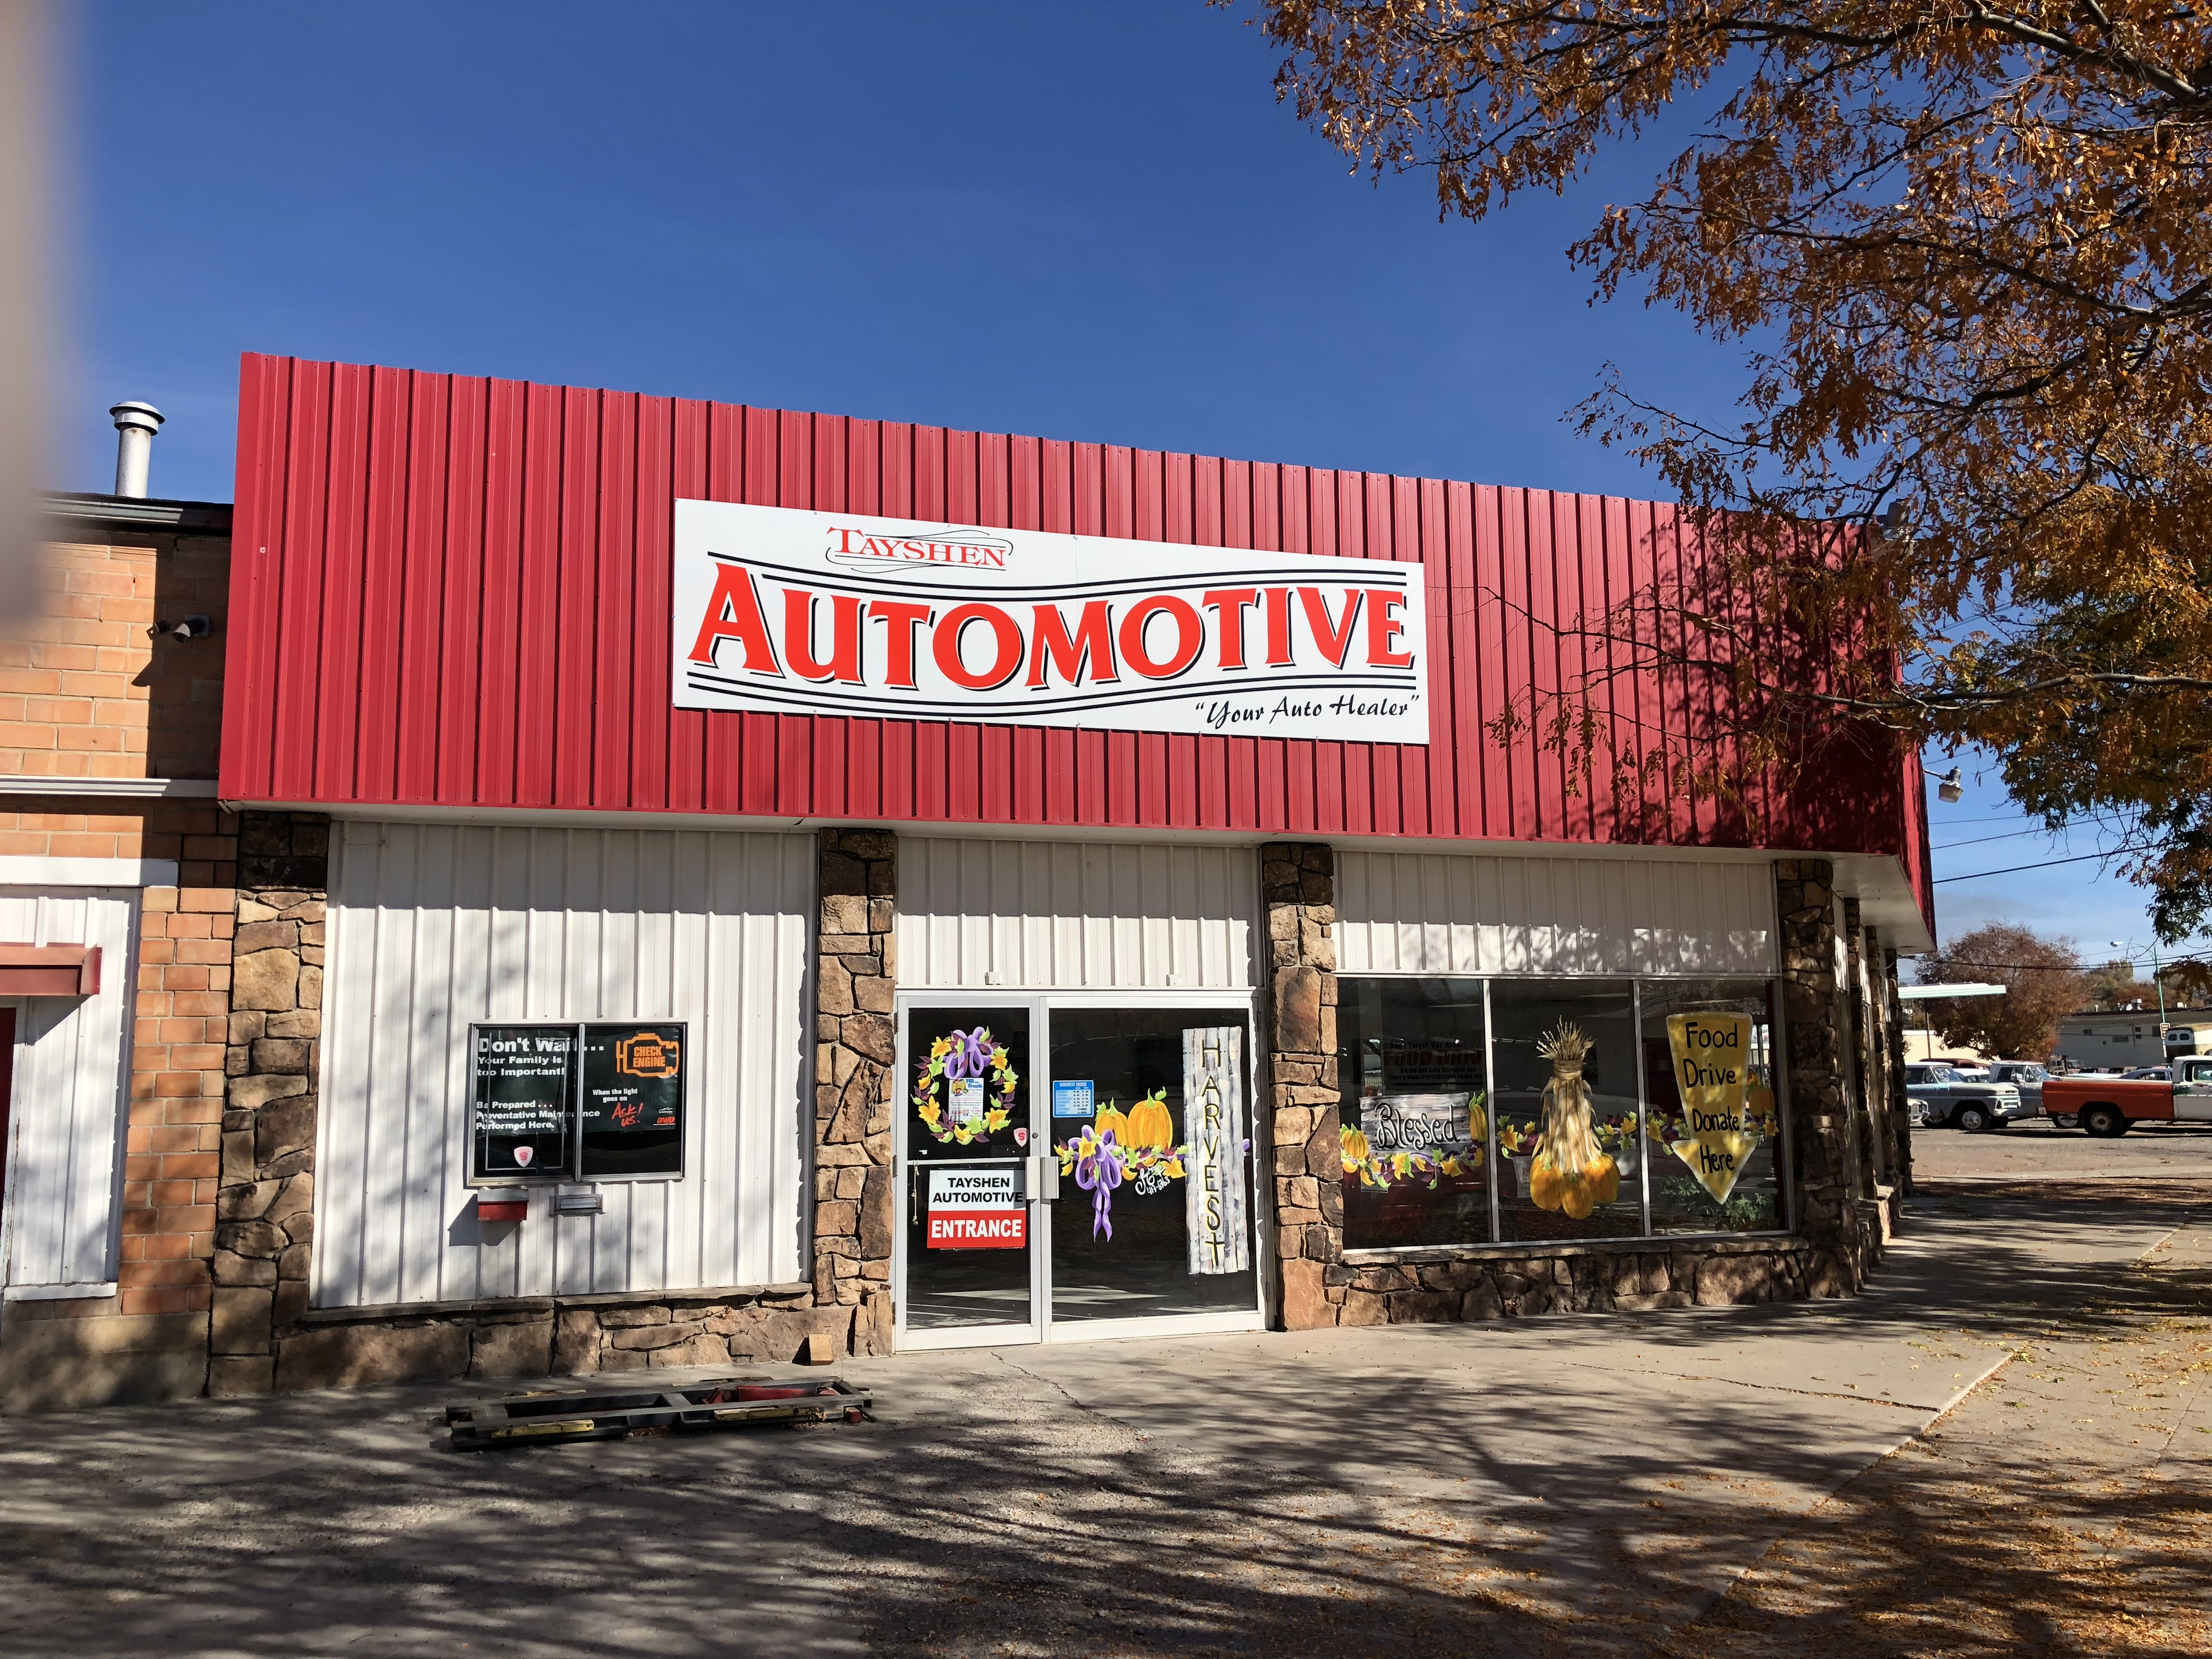 Automotive Repair Biz and Real Estate for Sale